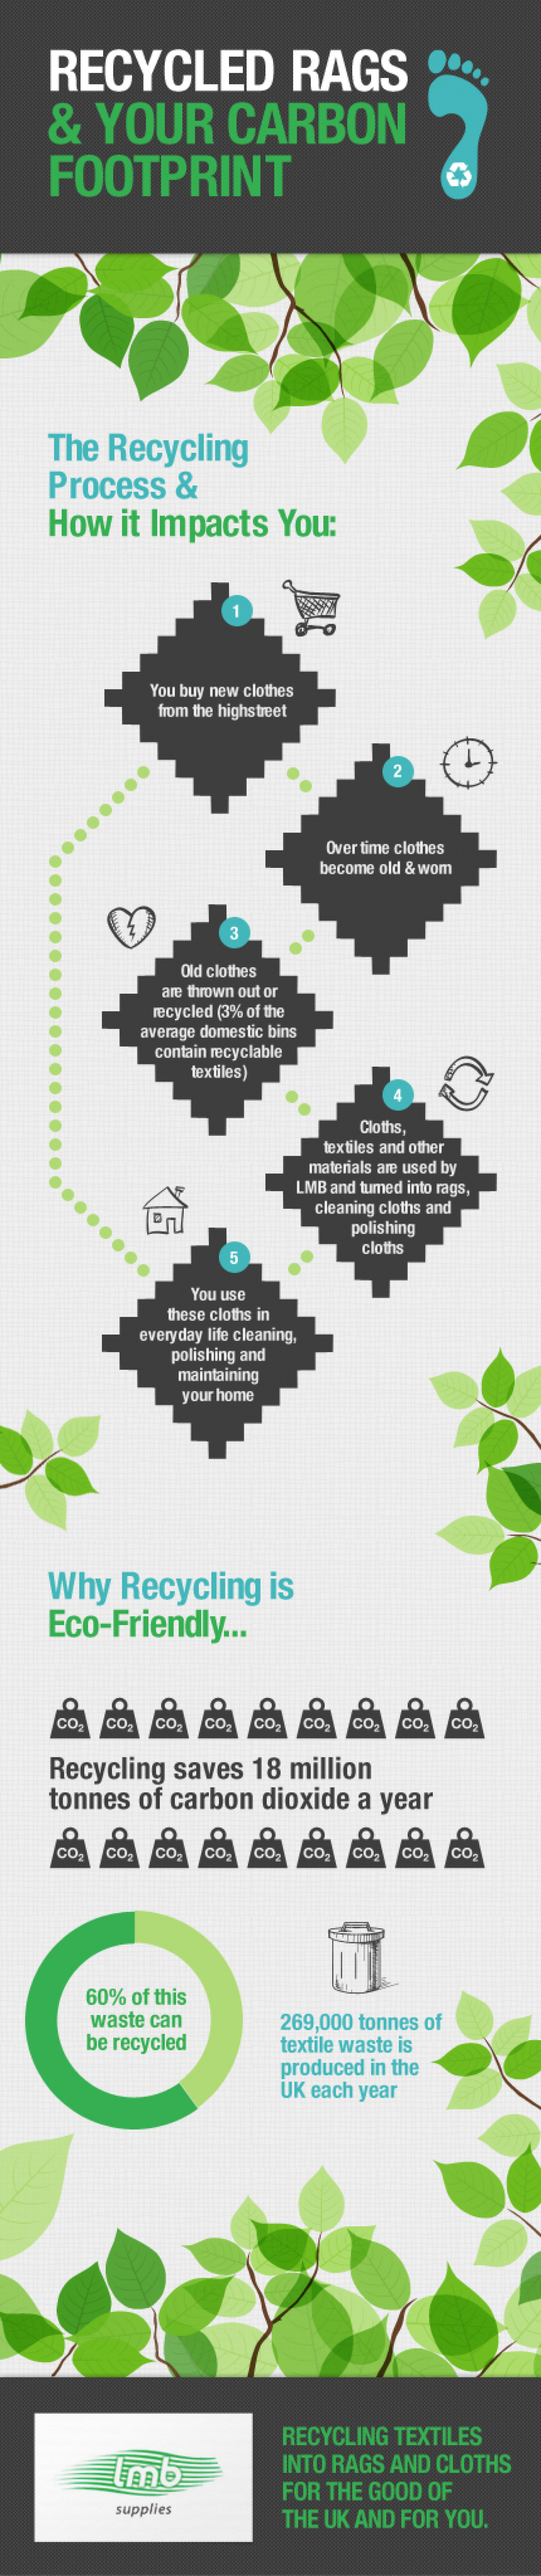 Recycled Rags & Your Carbon Footprint Infographic